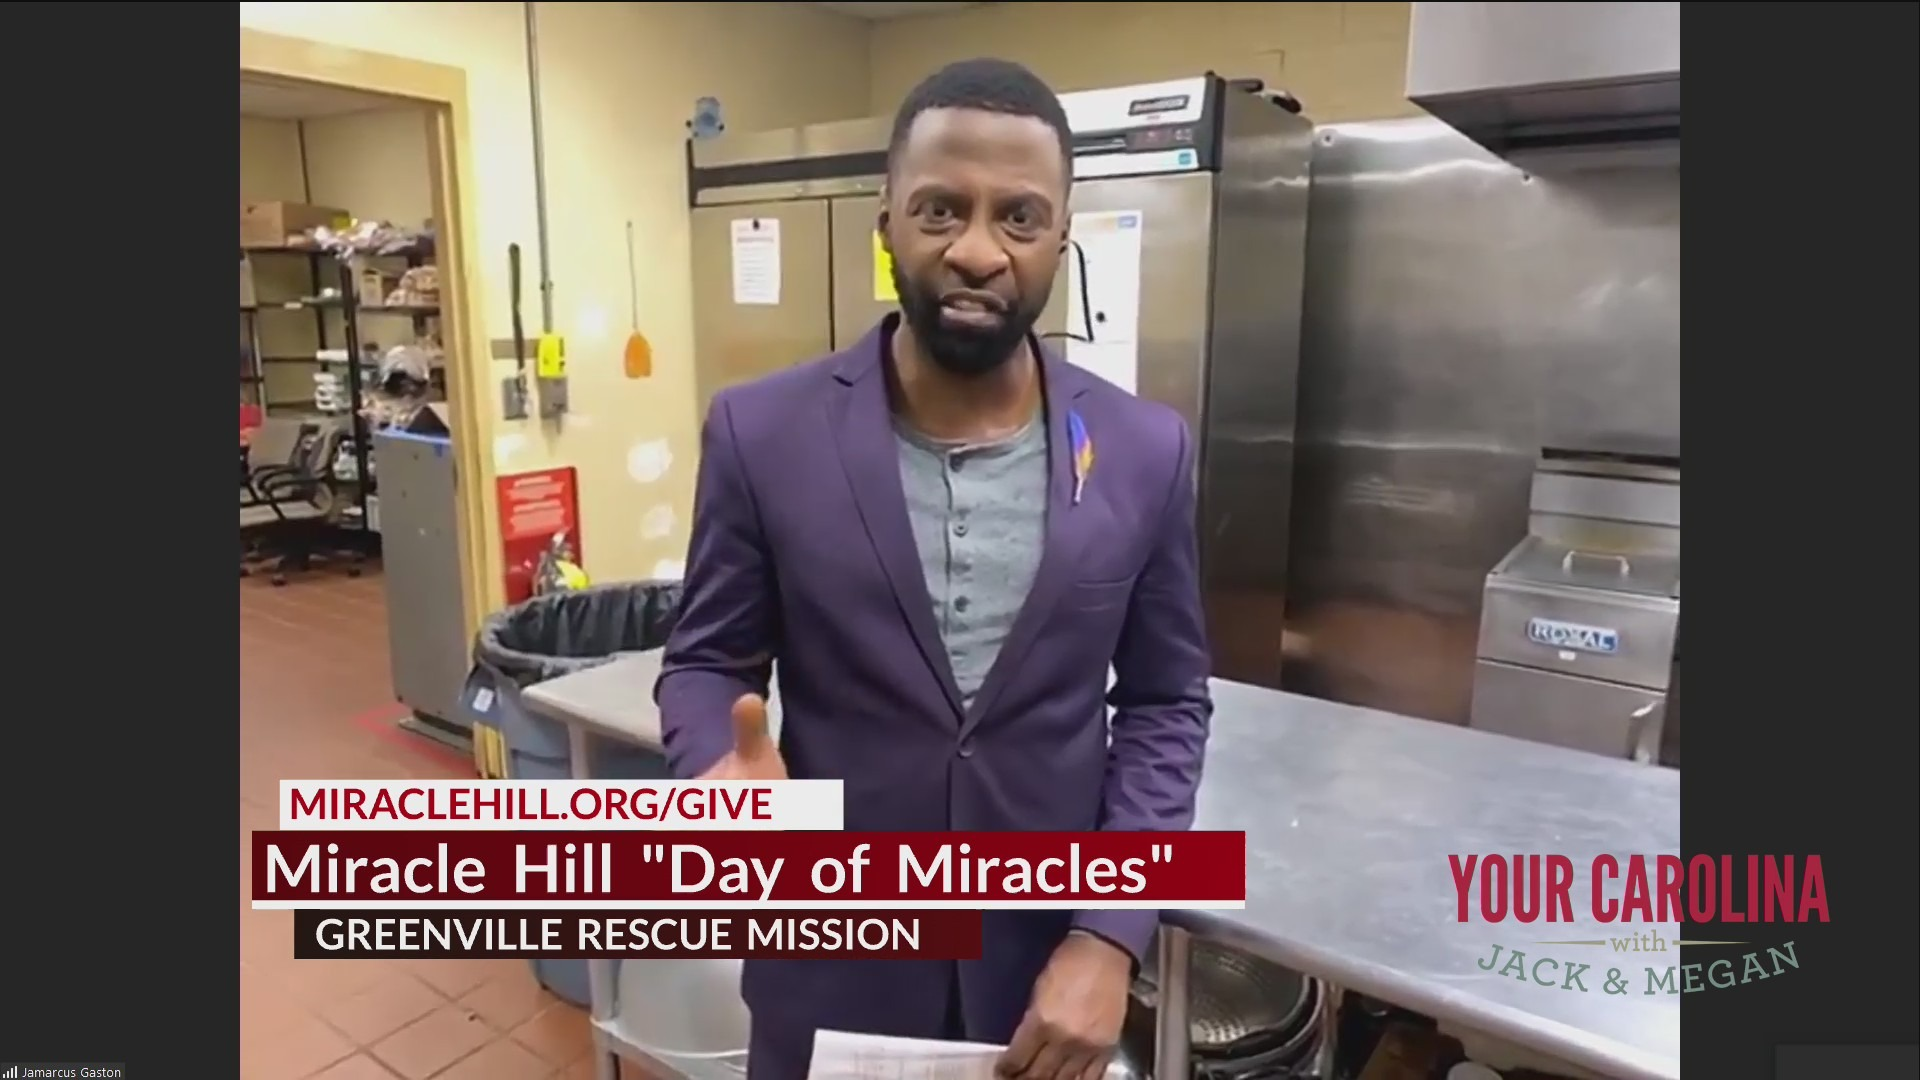 We go back live to Jamarcus at Miracle Hill Ministries